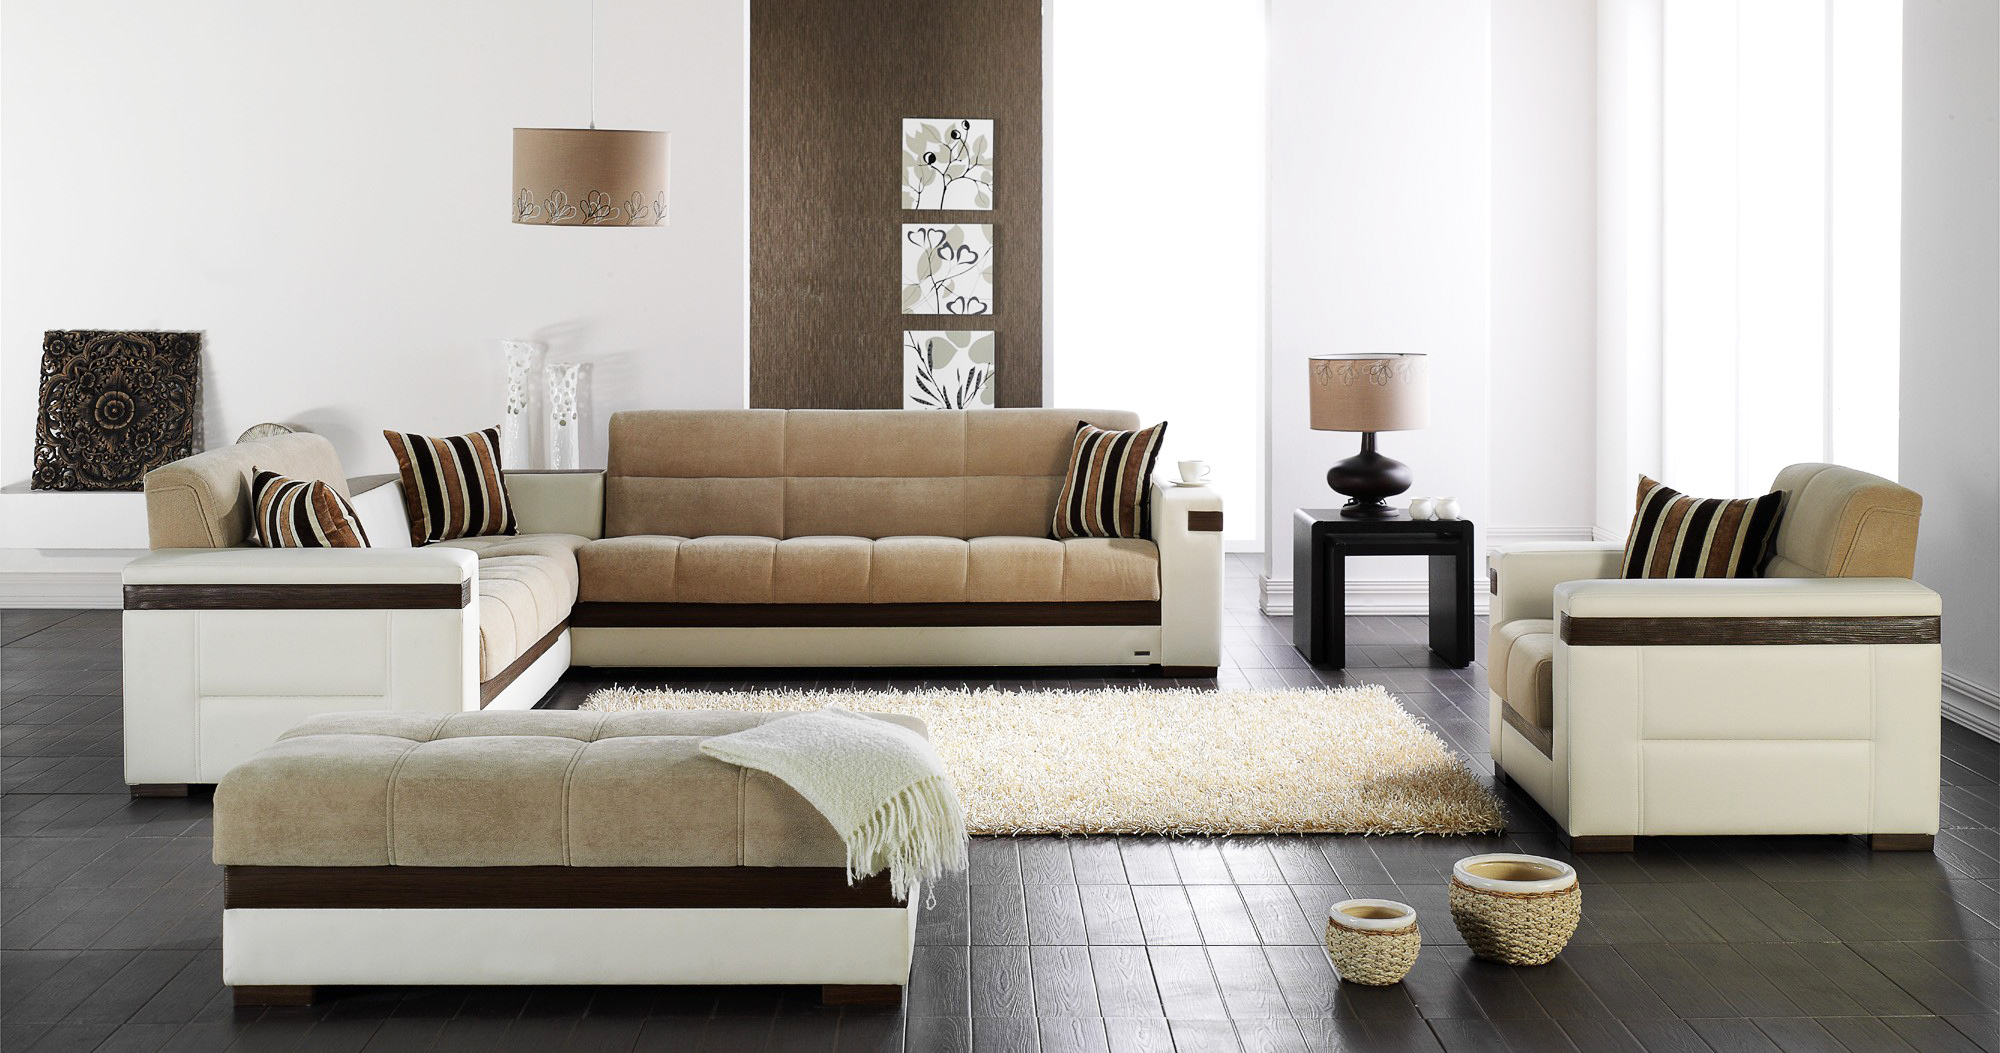 furniture-for-modern-house-with-sectional-sofas-in-the-livingroom-furniture-for-home-modern-living-room-furniture-sets-with-rug-area